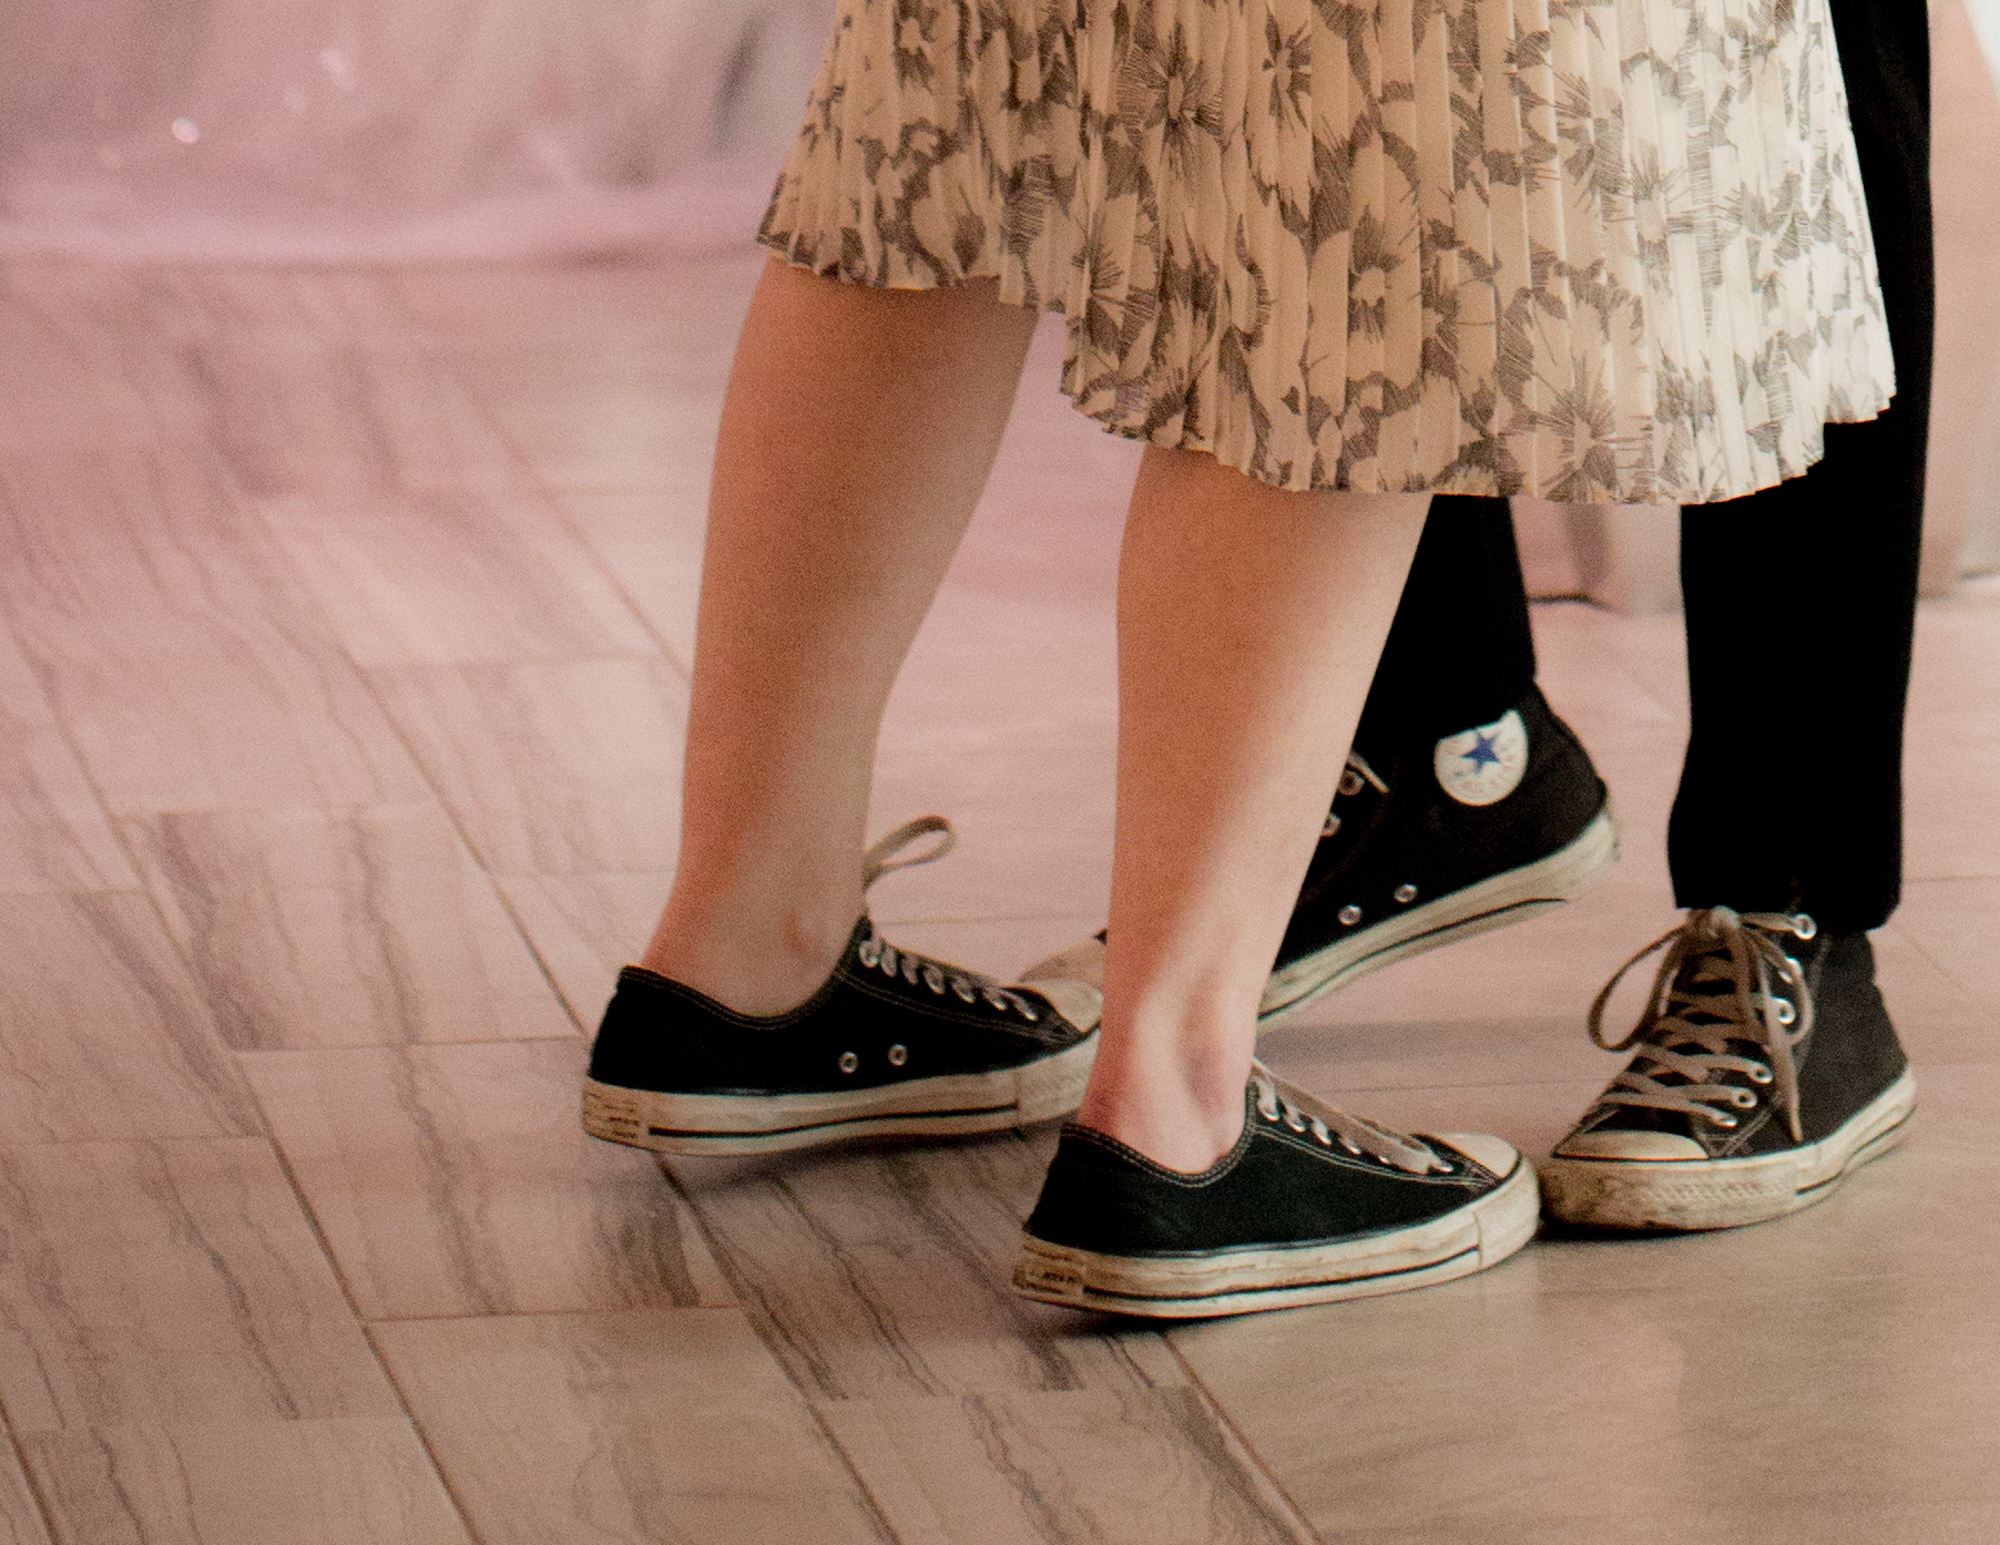 Colleen Stavrakos Wedding Photography close-up on both brides' converse sneakers as they dance